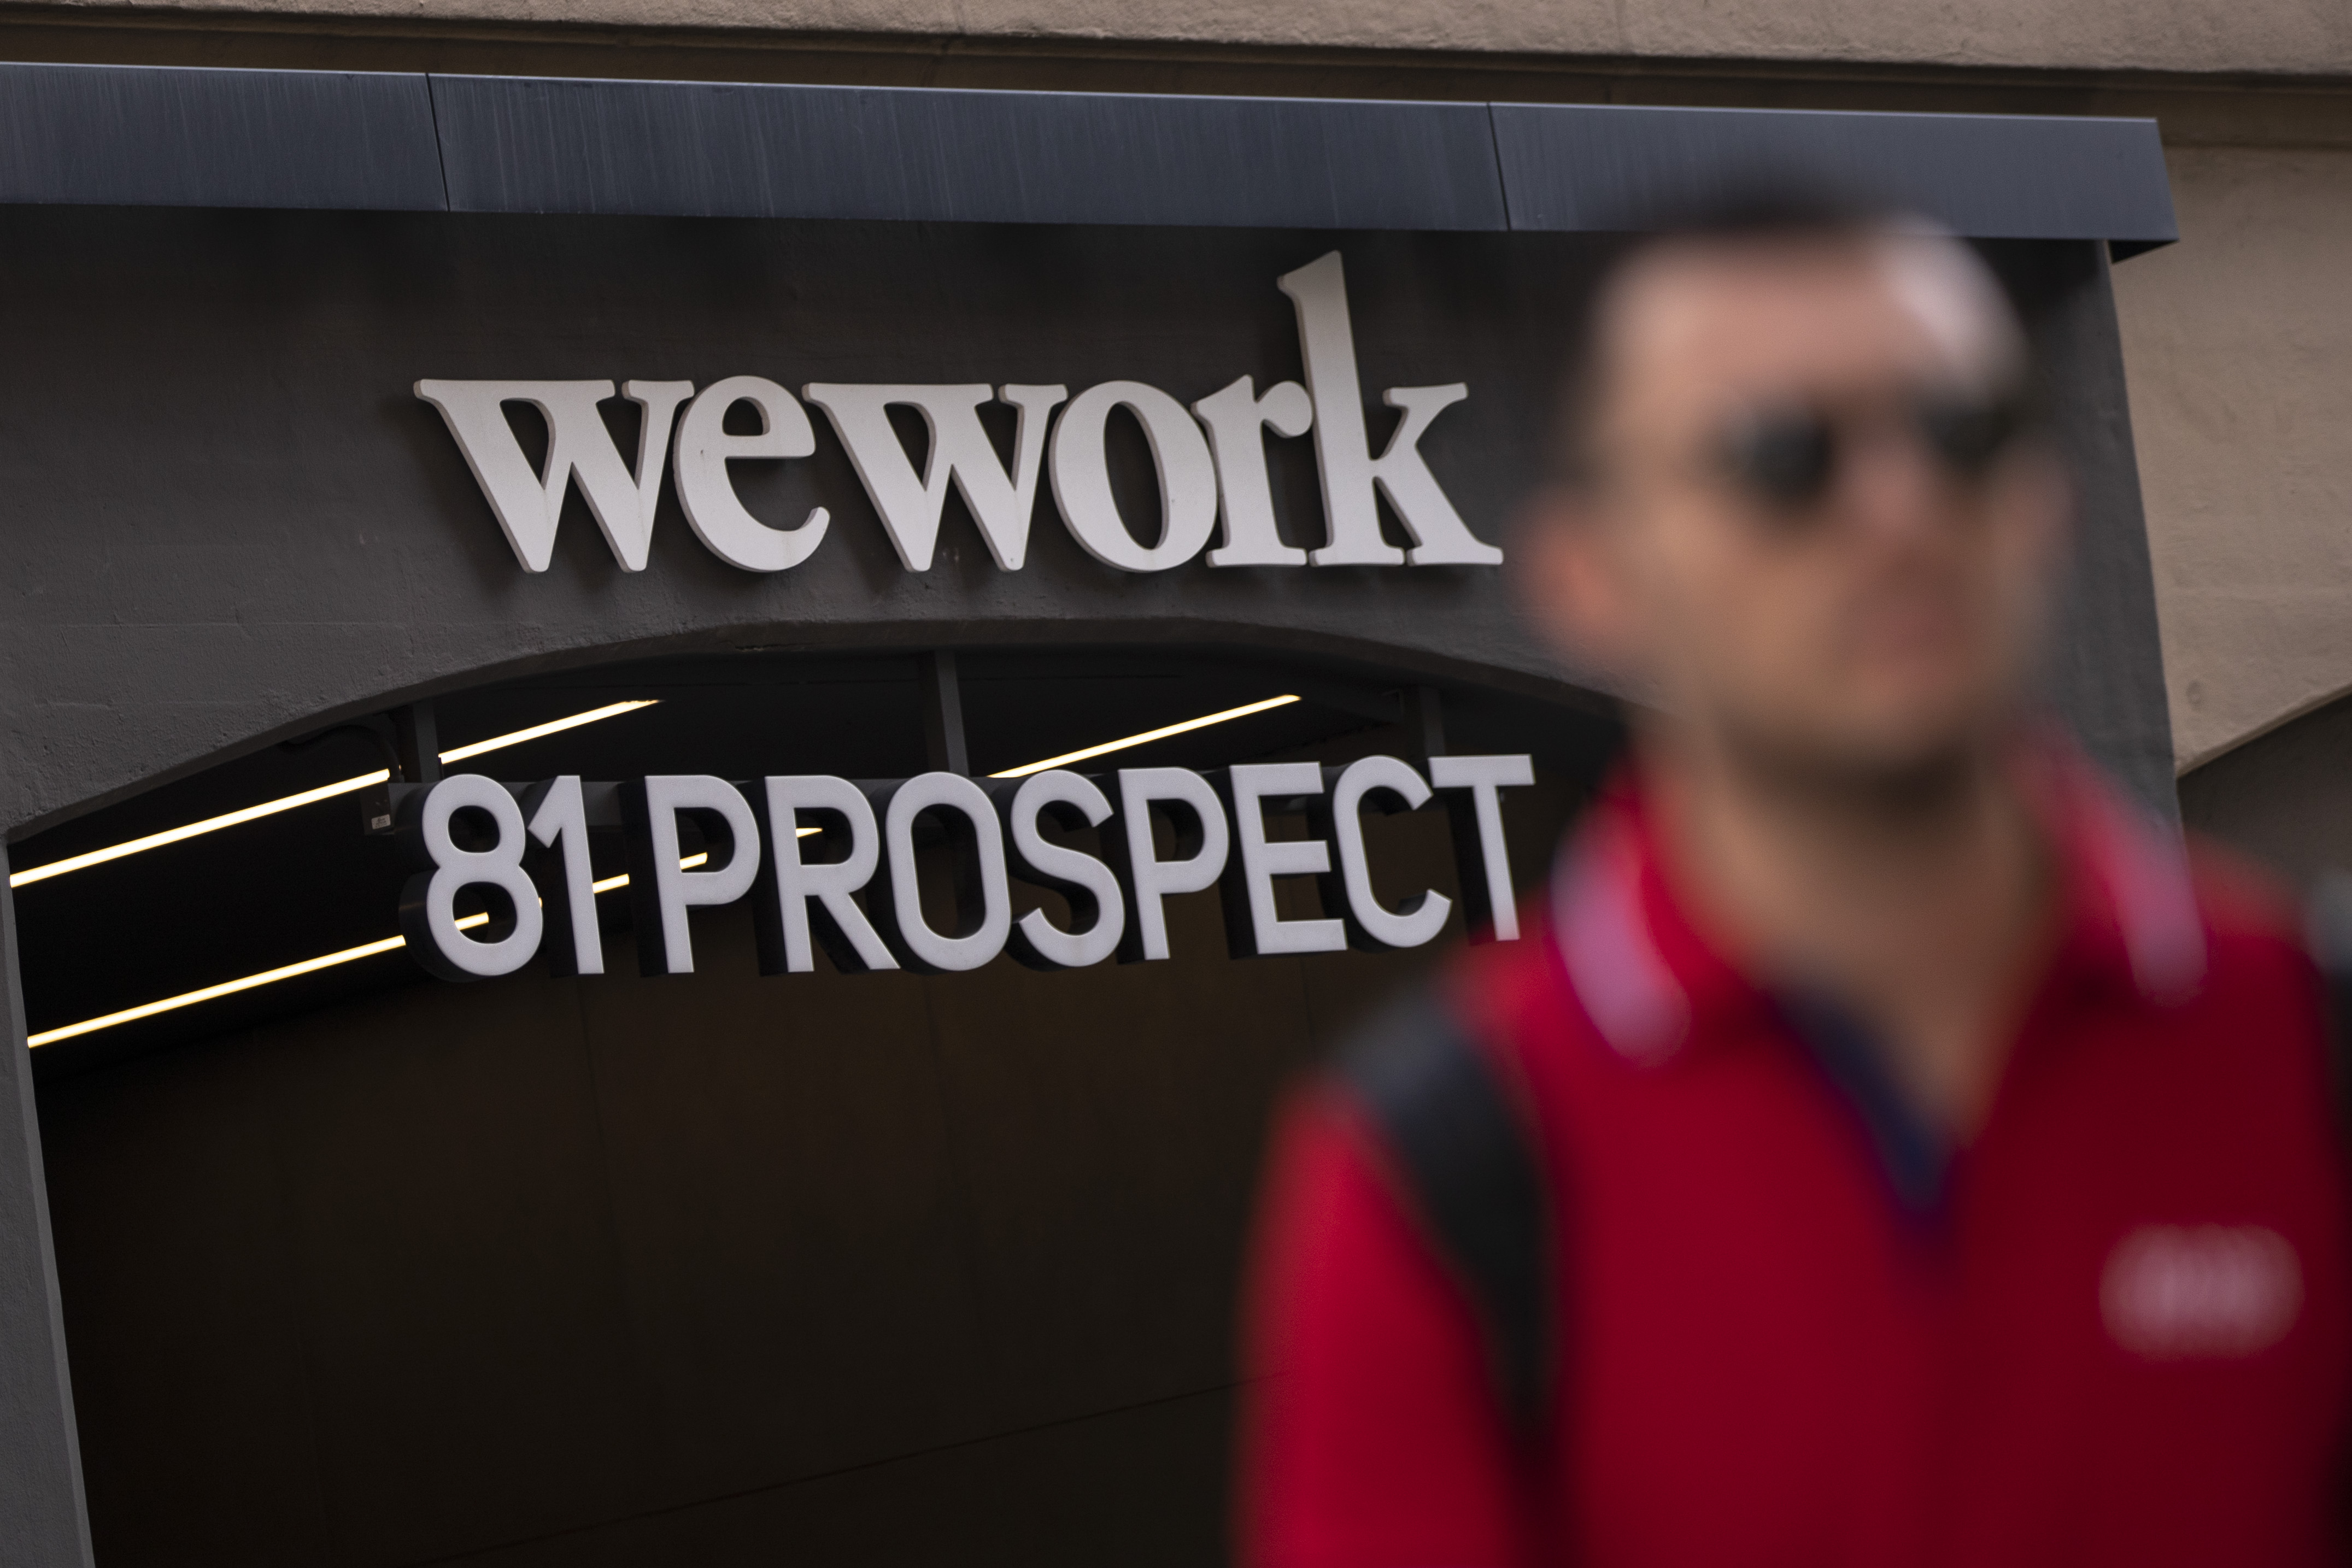 Man whose face is out of focus walks away from a WeWork location at 81 Prospect in New York City.